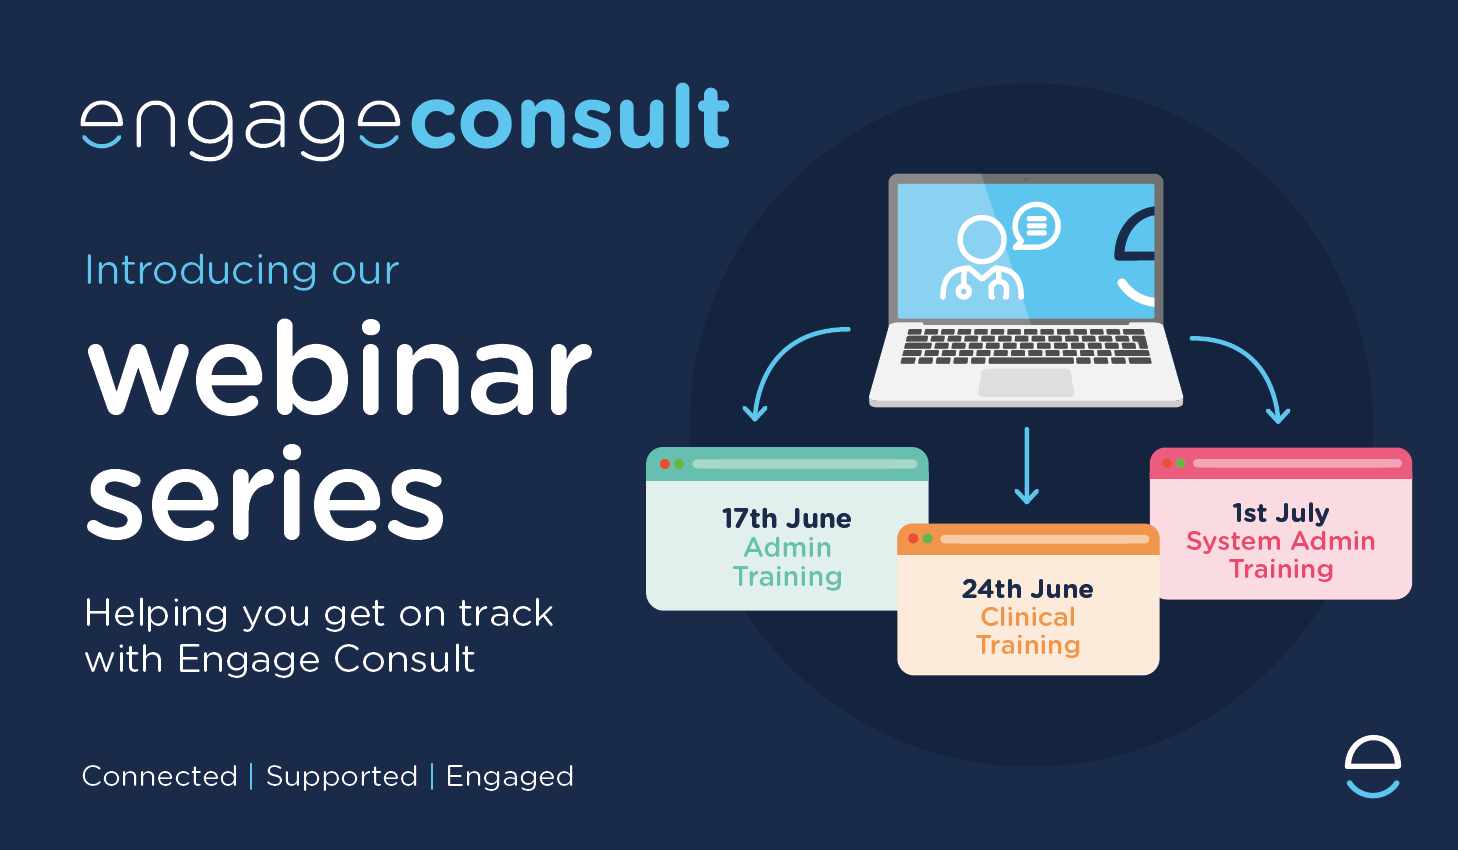 Engage Consult Live Learning Webinar